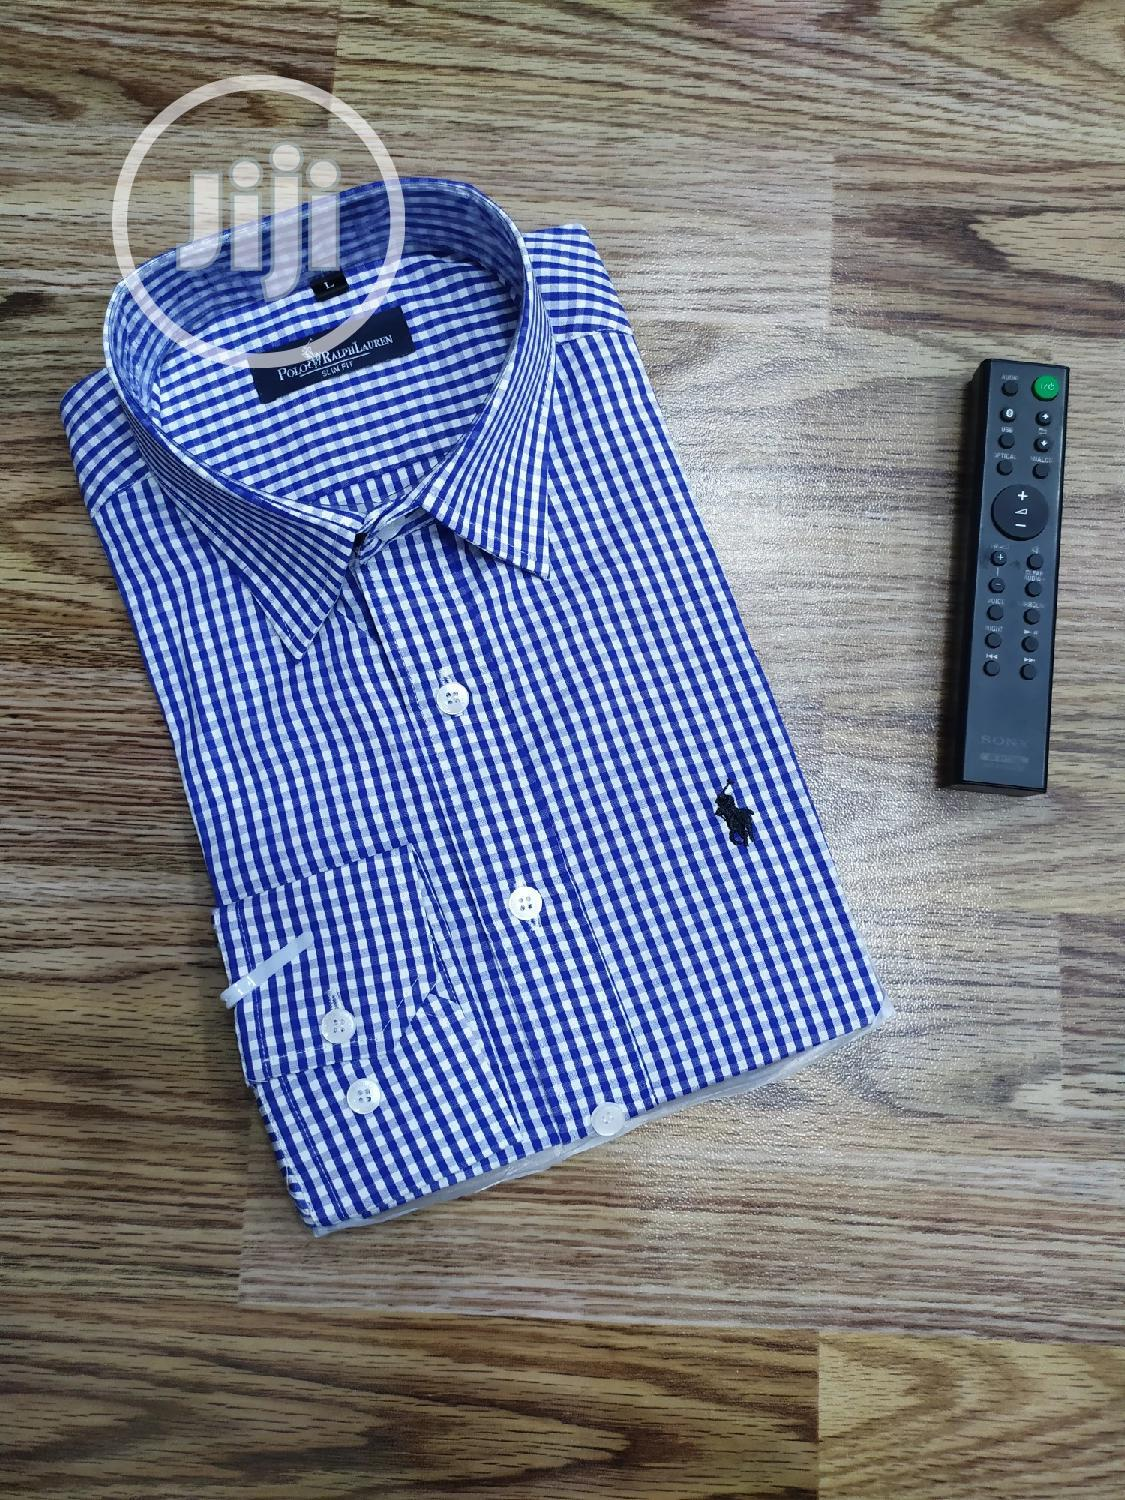 Polo Ralph Lauren Tiny Draft/Check Cutton Shirts | Clothing for sale in Lagos Island, Lagos State, Nigeria